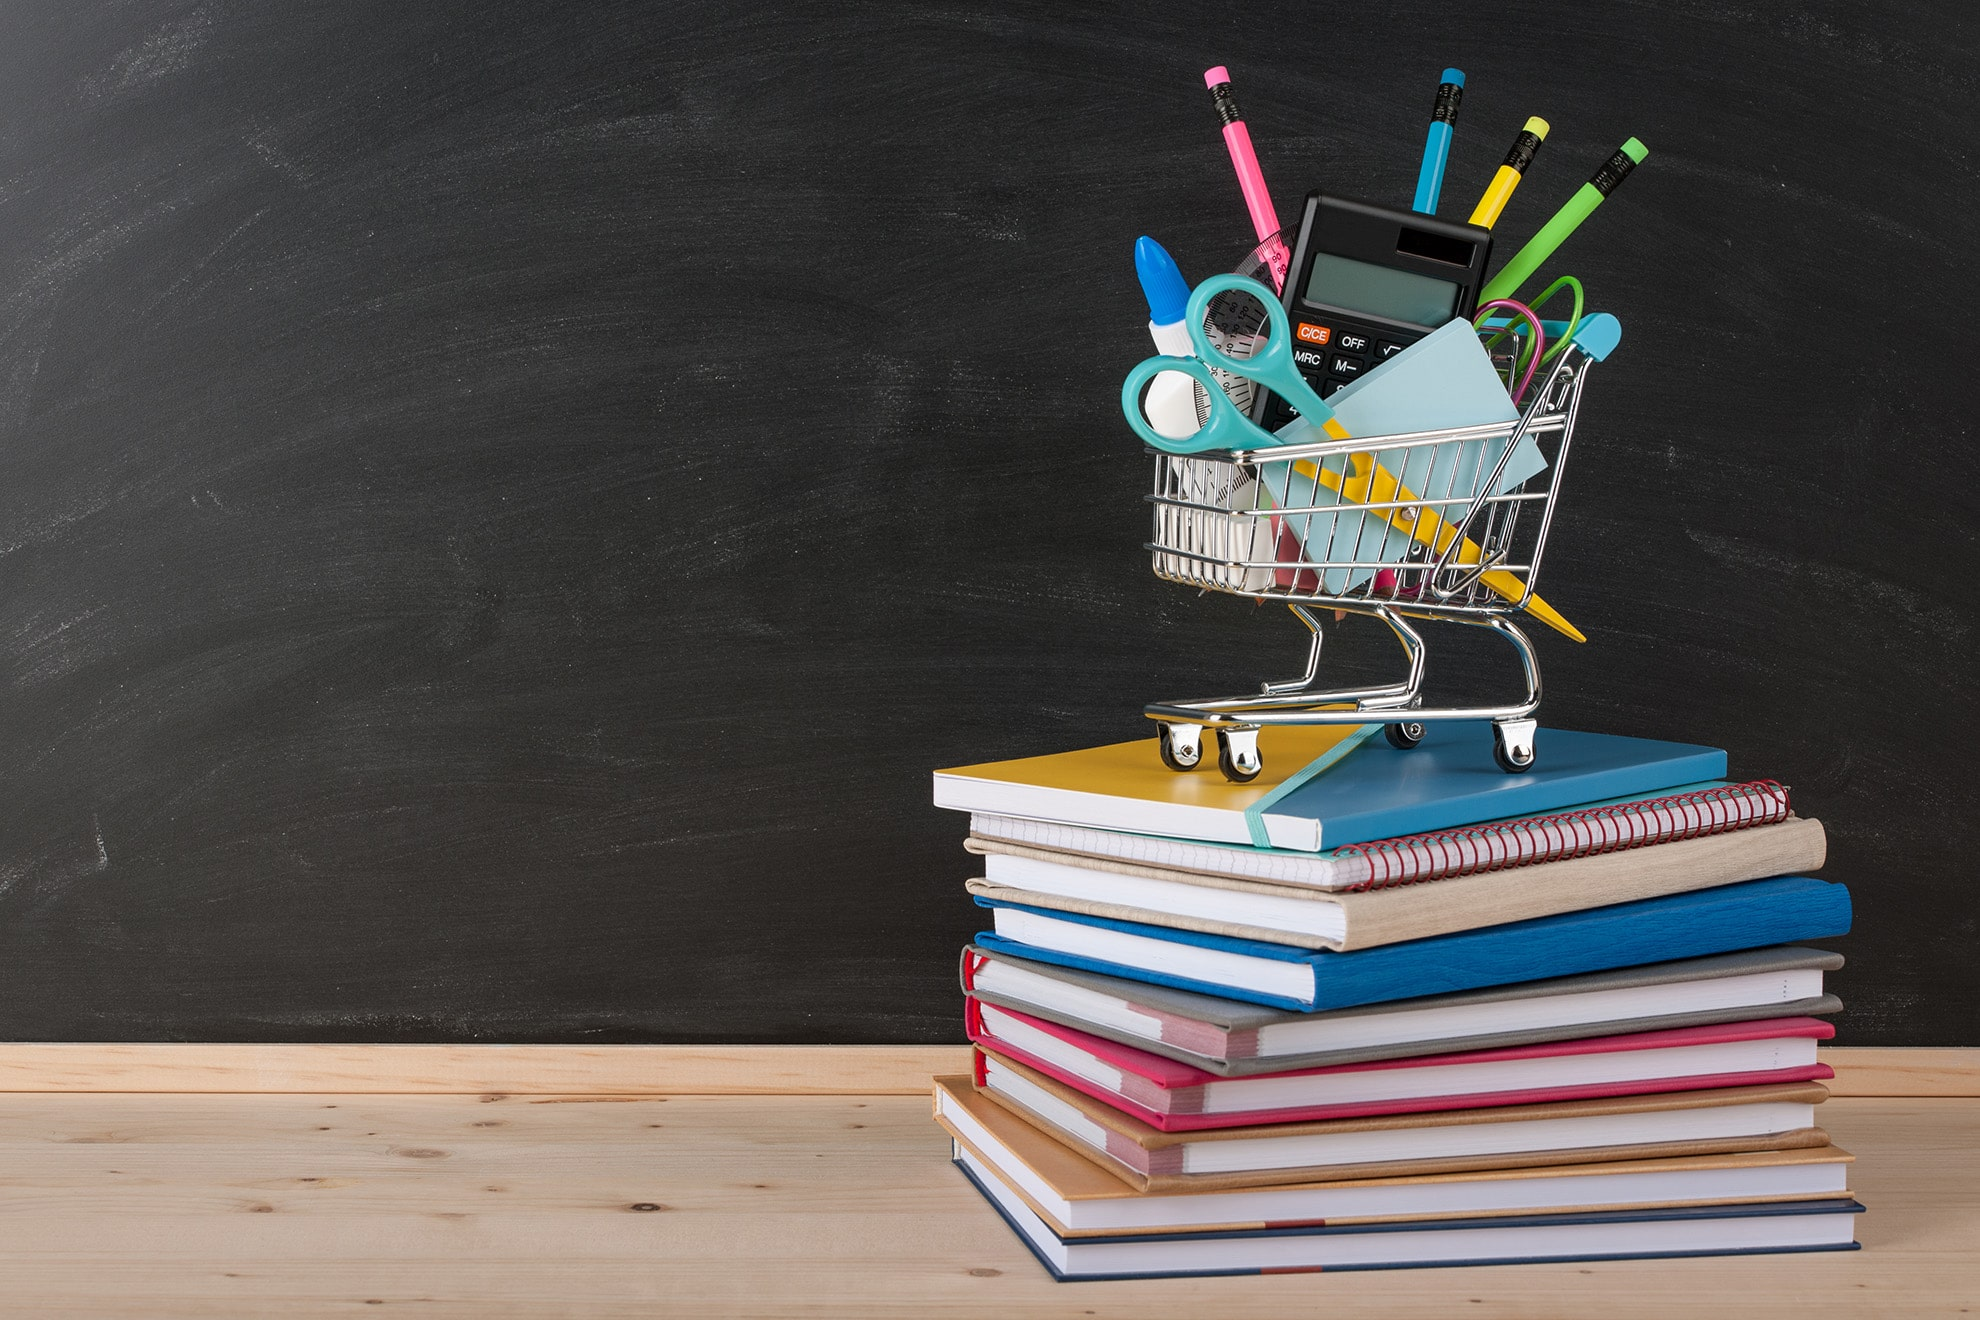 back-to-school-concept-with-school-supplies-PKRCNF2-min